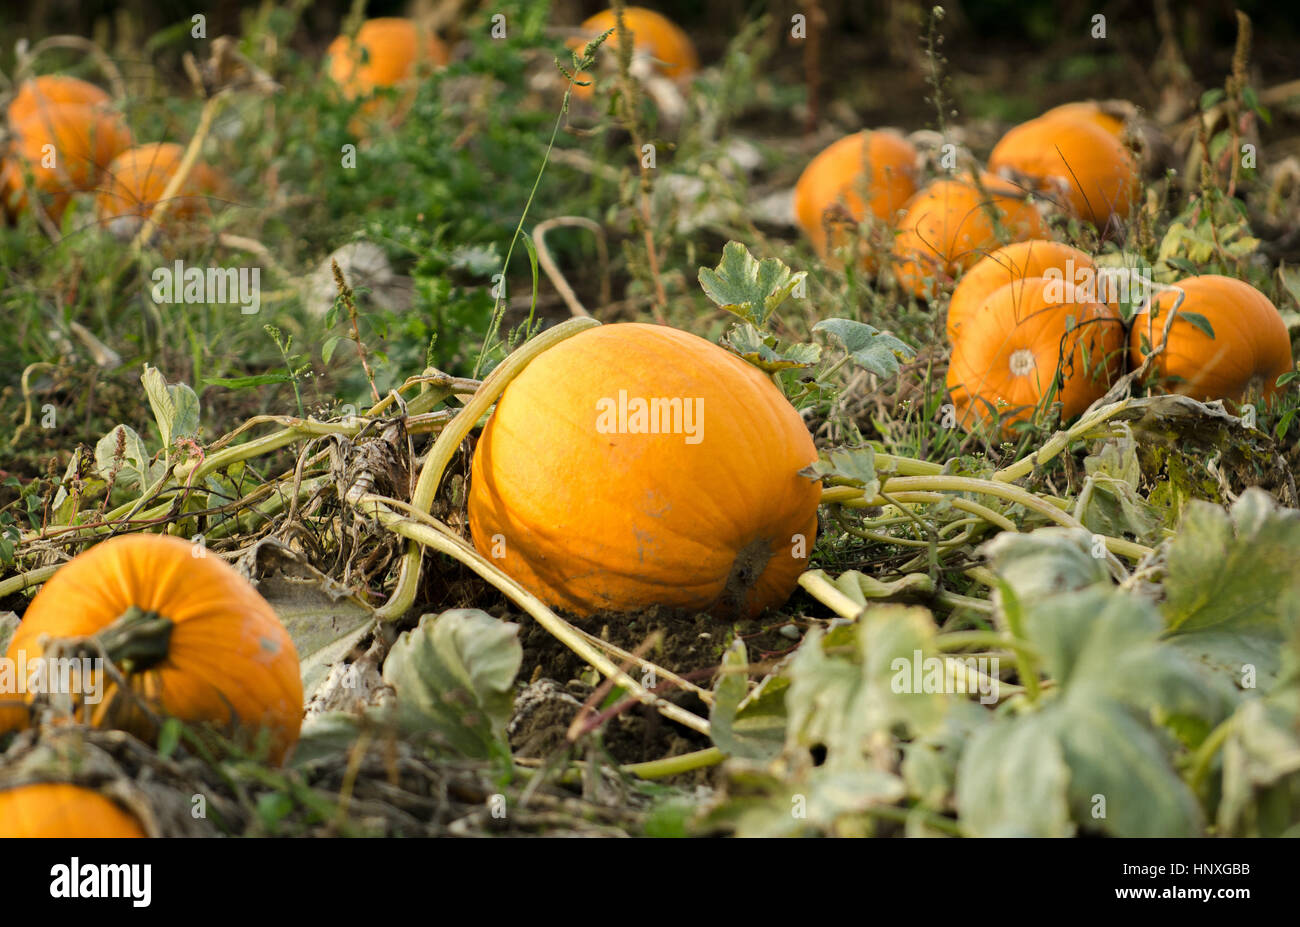 Pumpkins in field - Stock Image